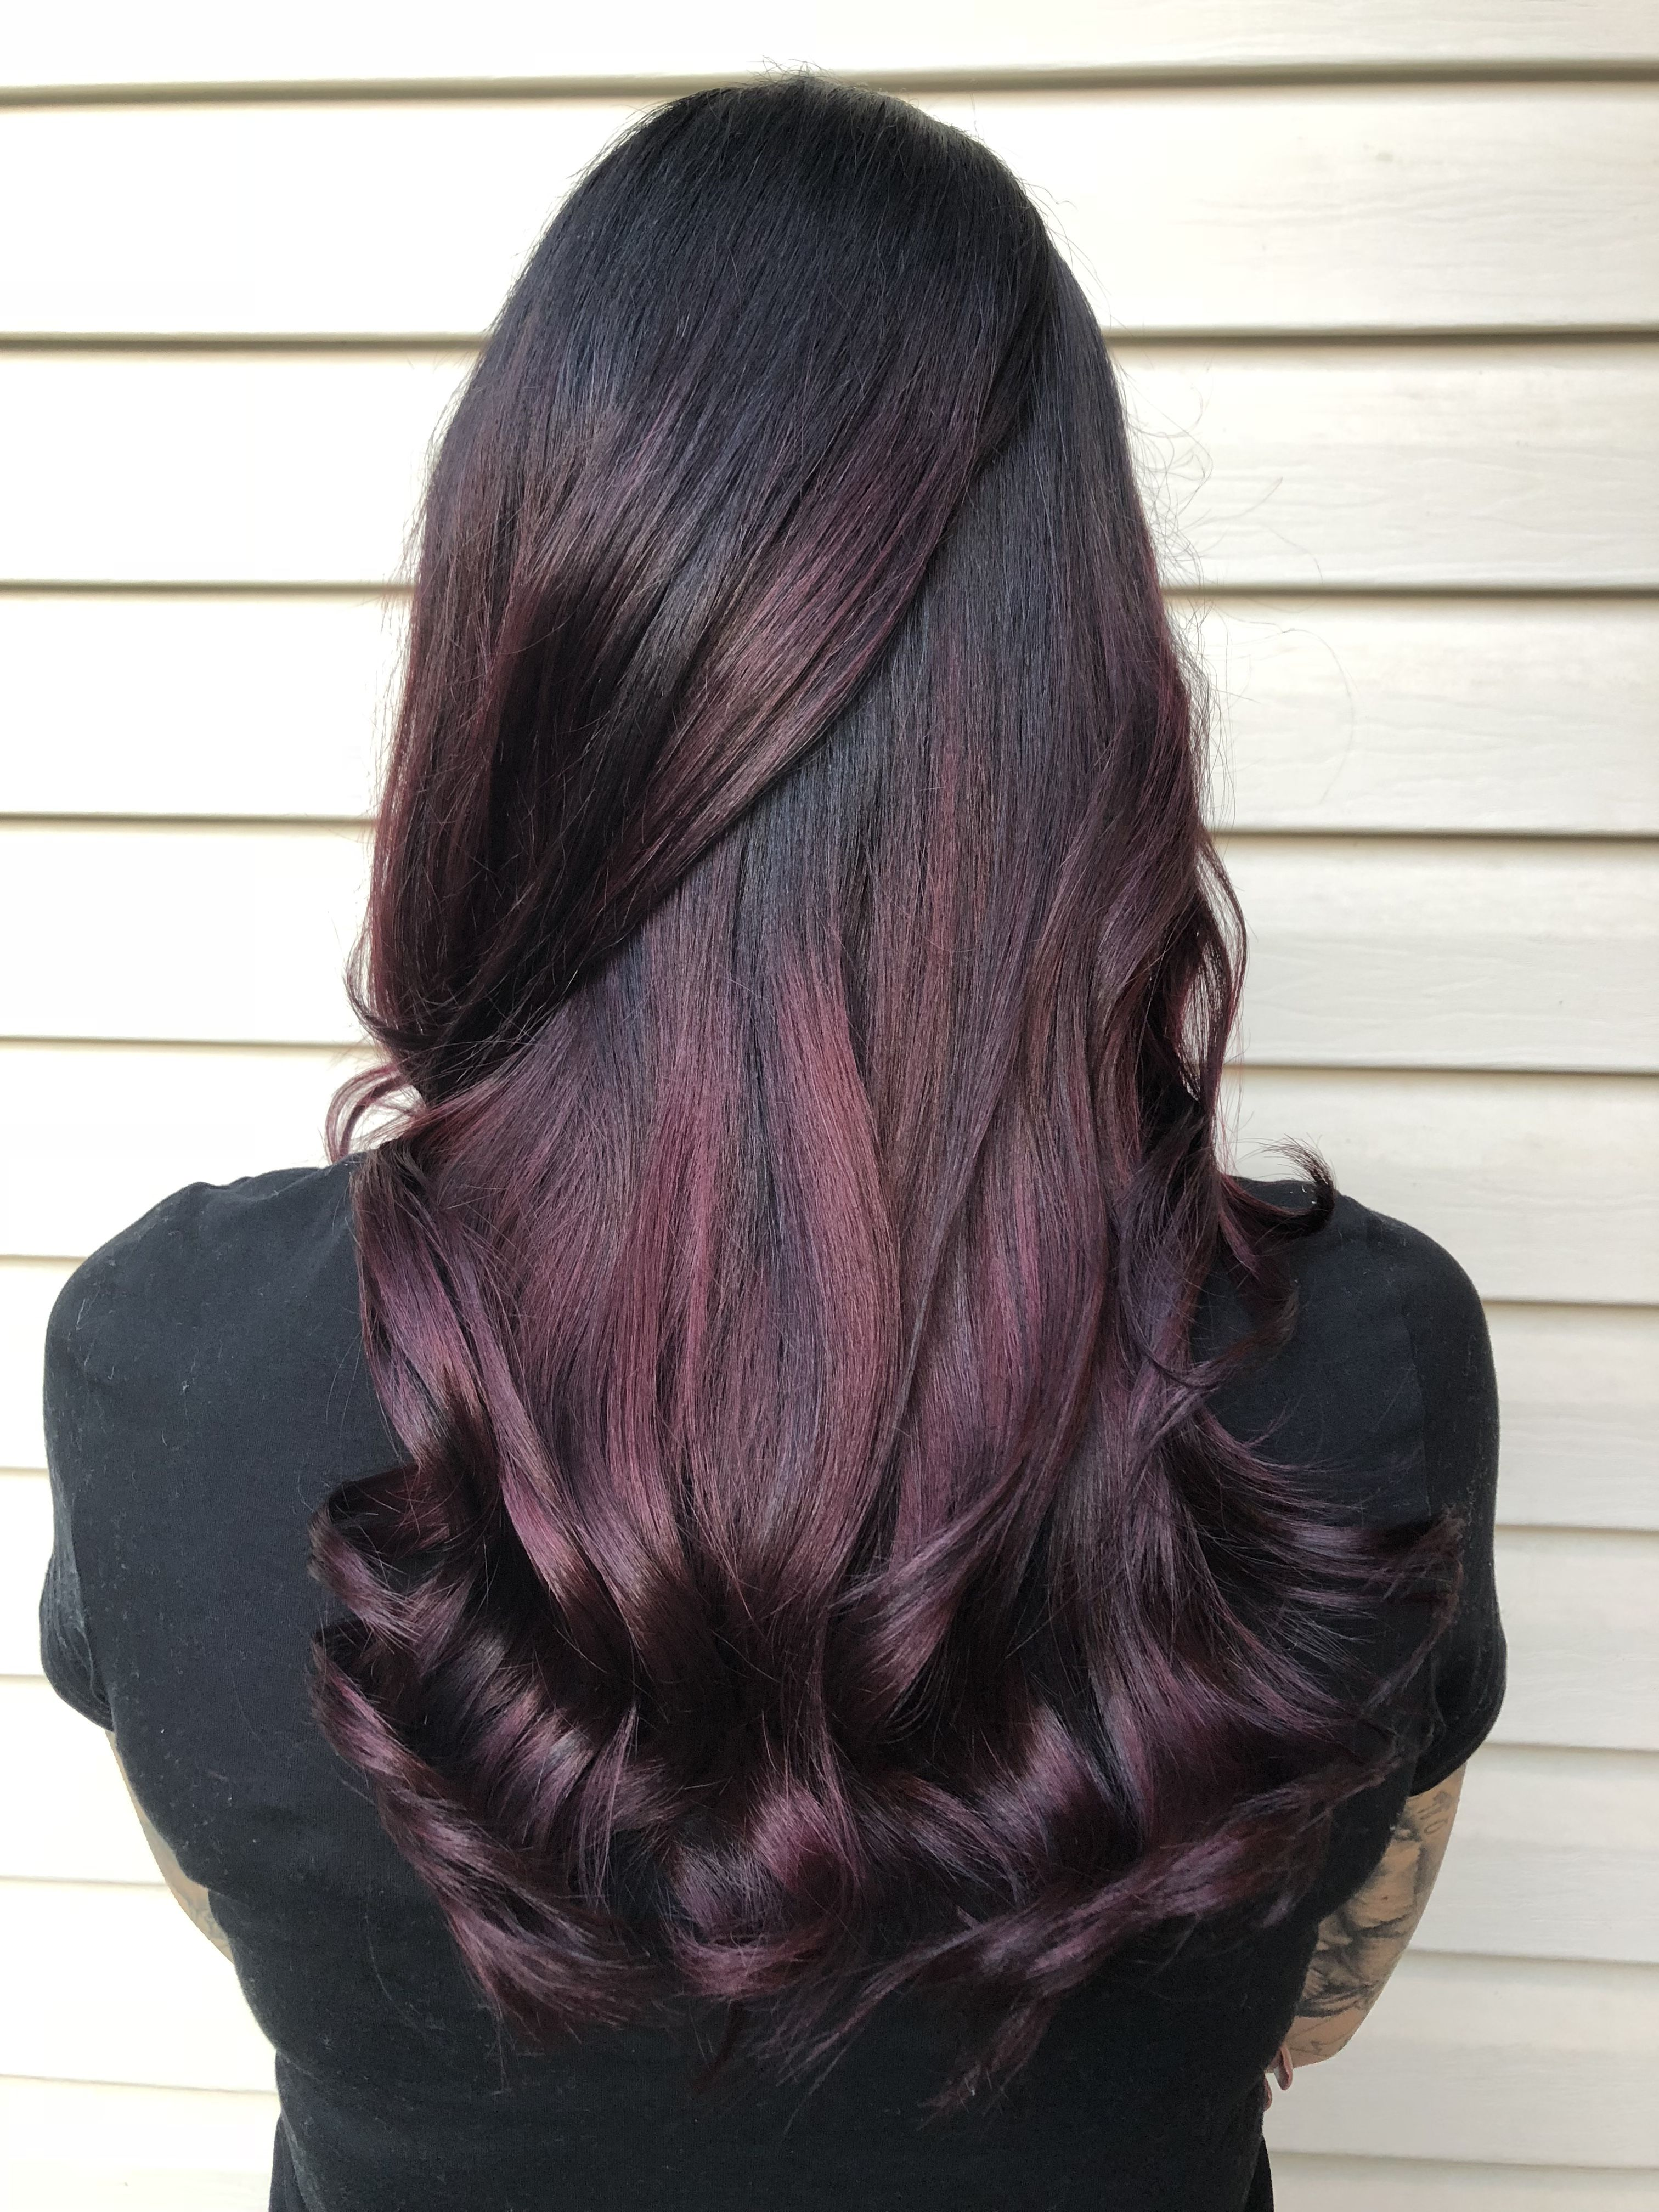 Plum Hair Balayage Ombre Purple Red Mahogany Hair Color Fall 2017 Curly Hair Style Long Hair Brunette Hair Color For Black Hair Hair Color Plum Burgundy Hair